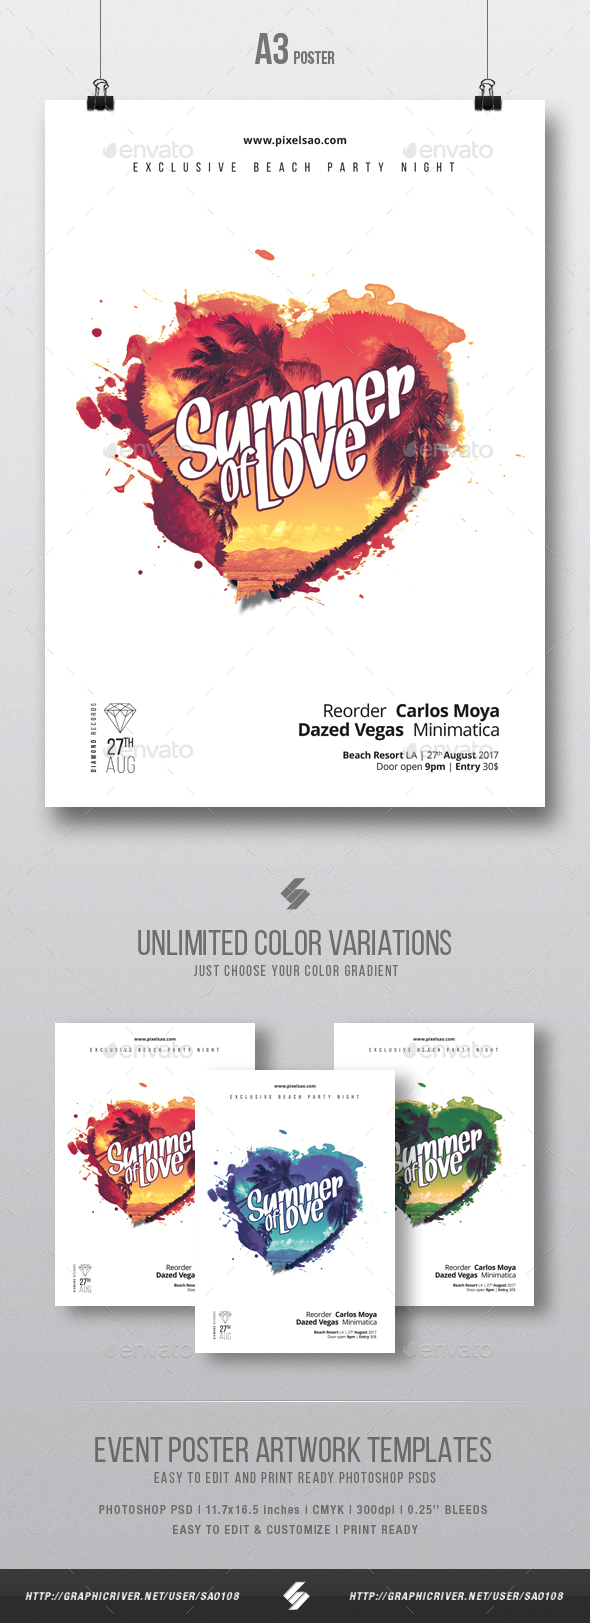 A3 and House Stationery and Design Templates from GraphicRiver